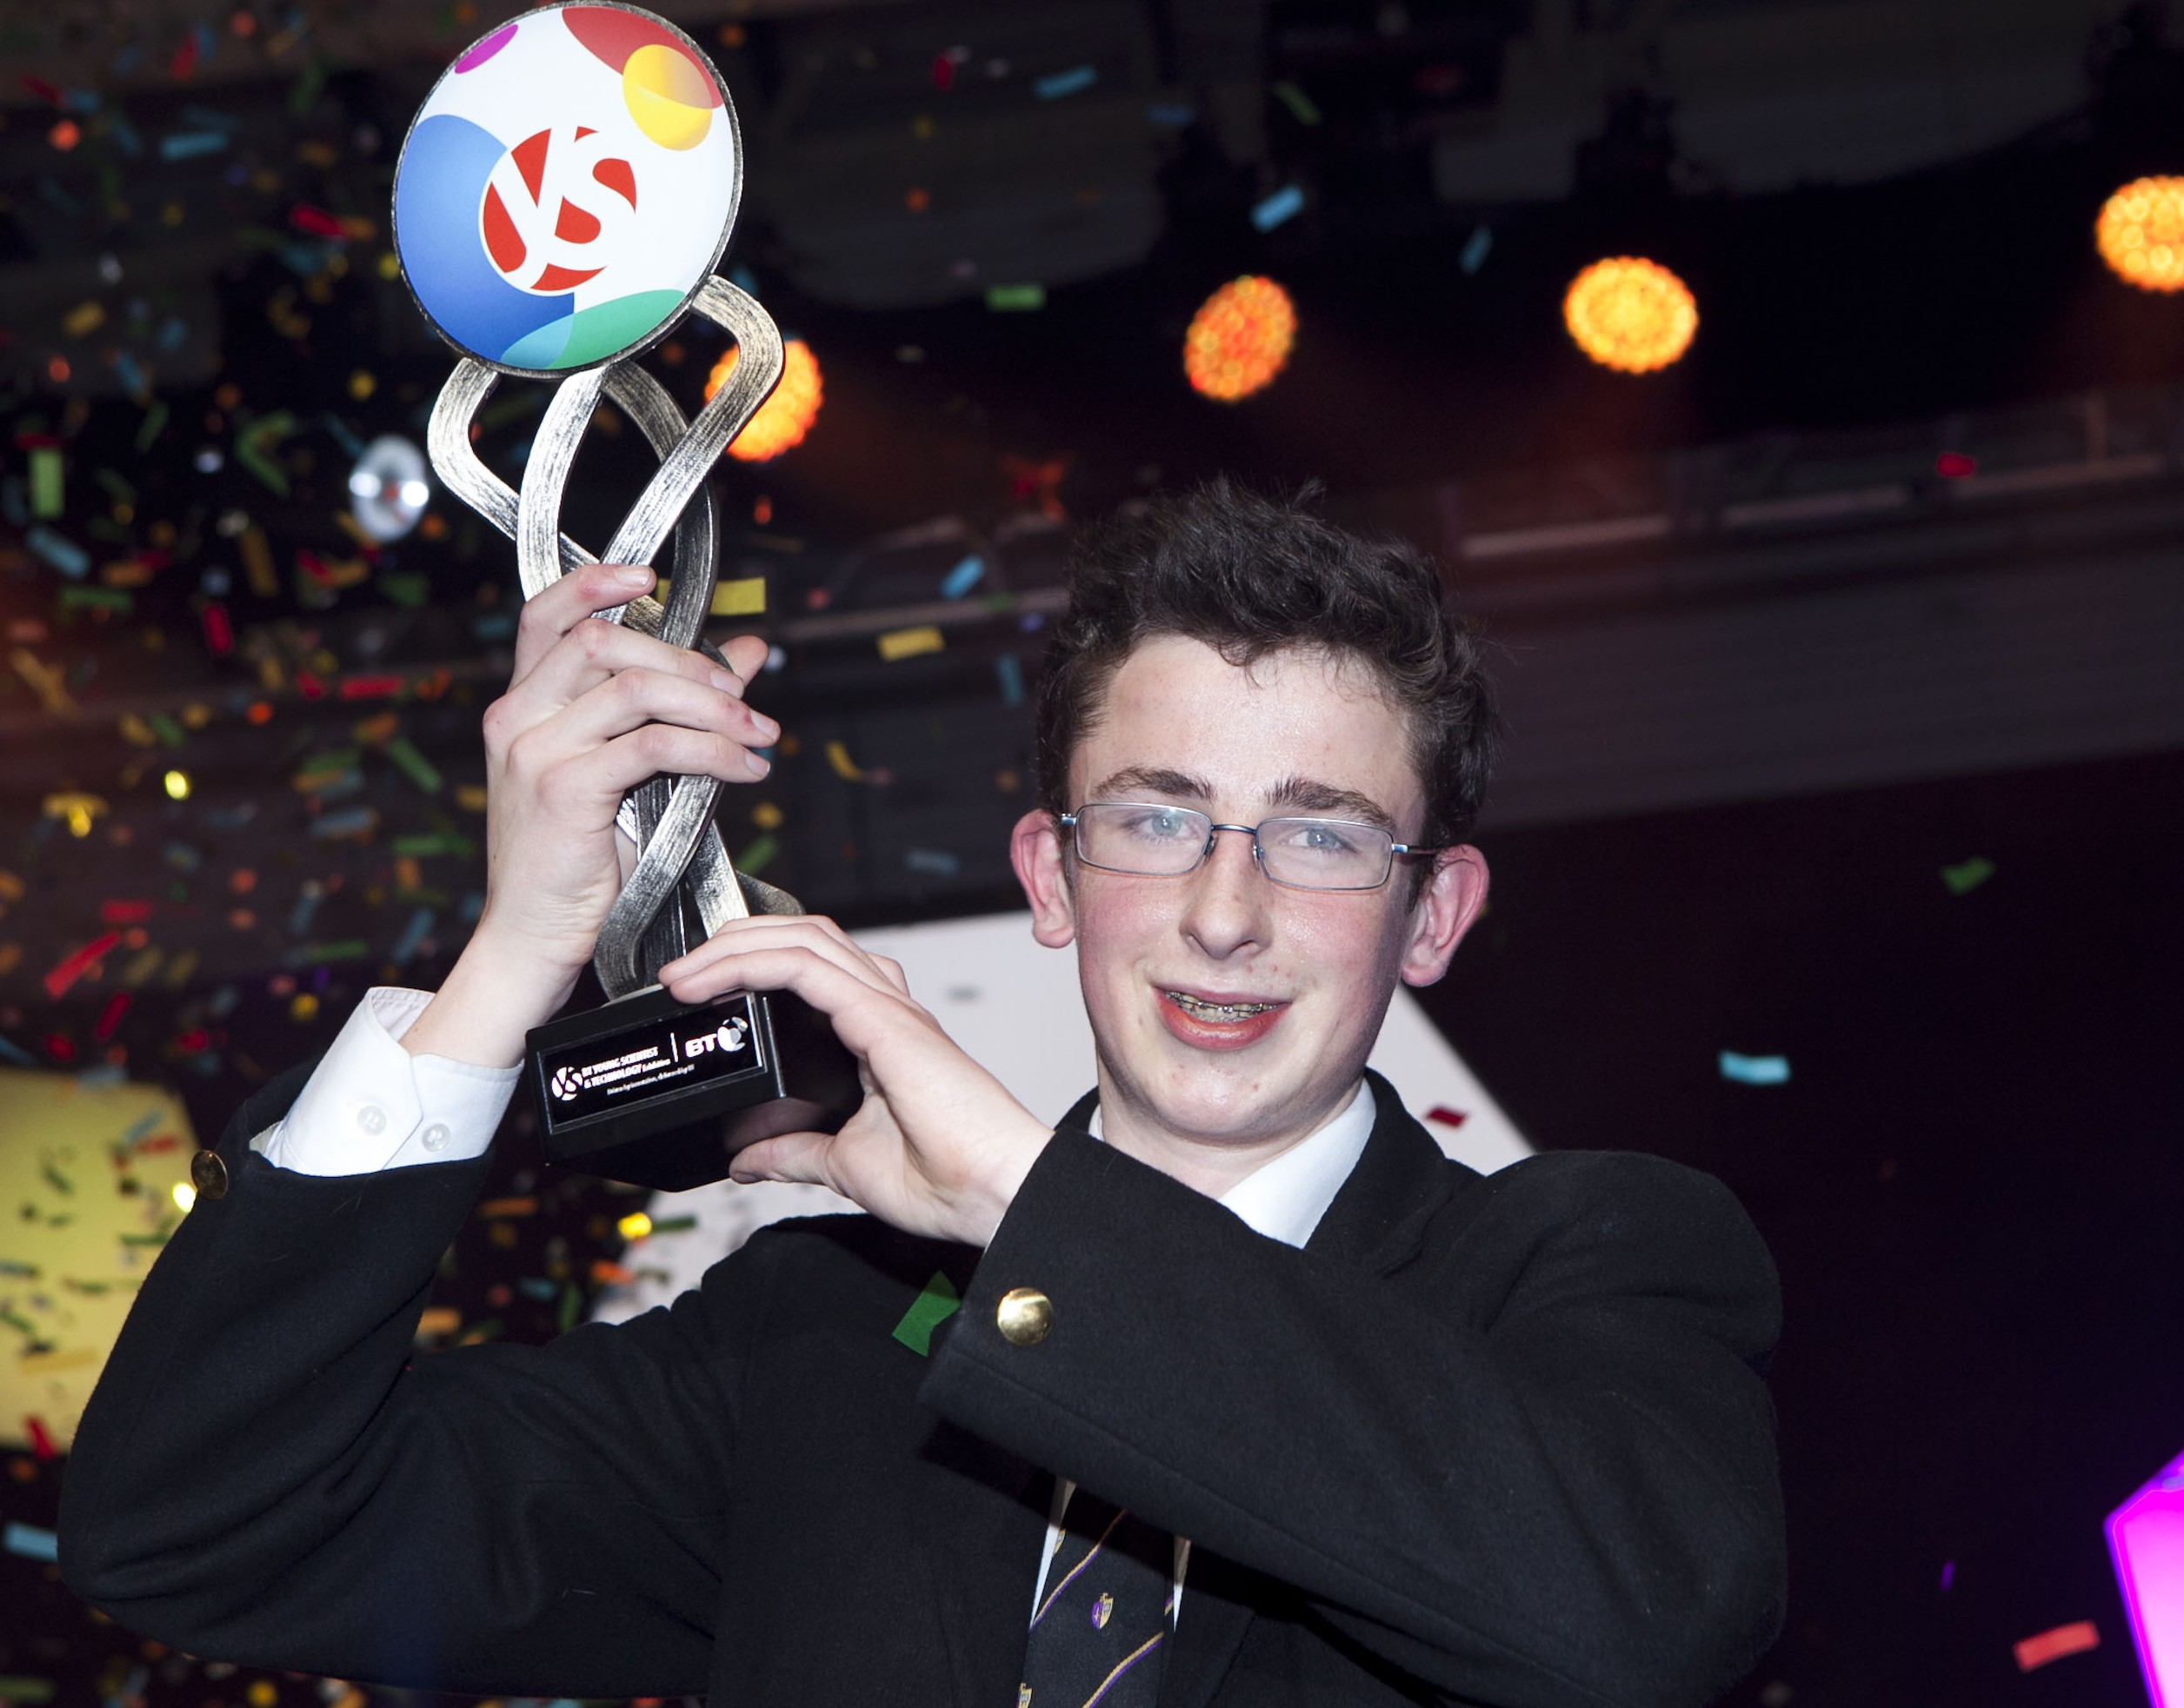 Bright spark Paul named Young Scientist of Year